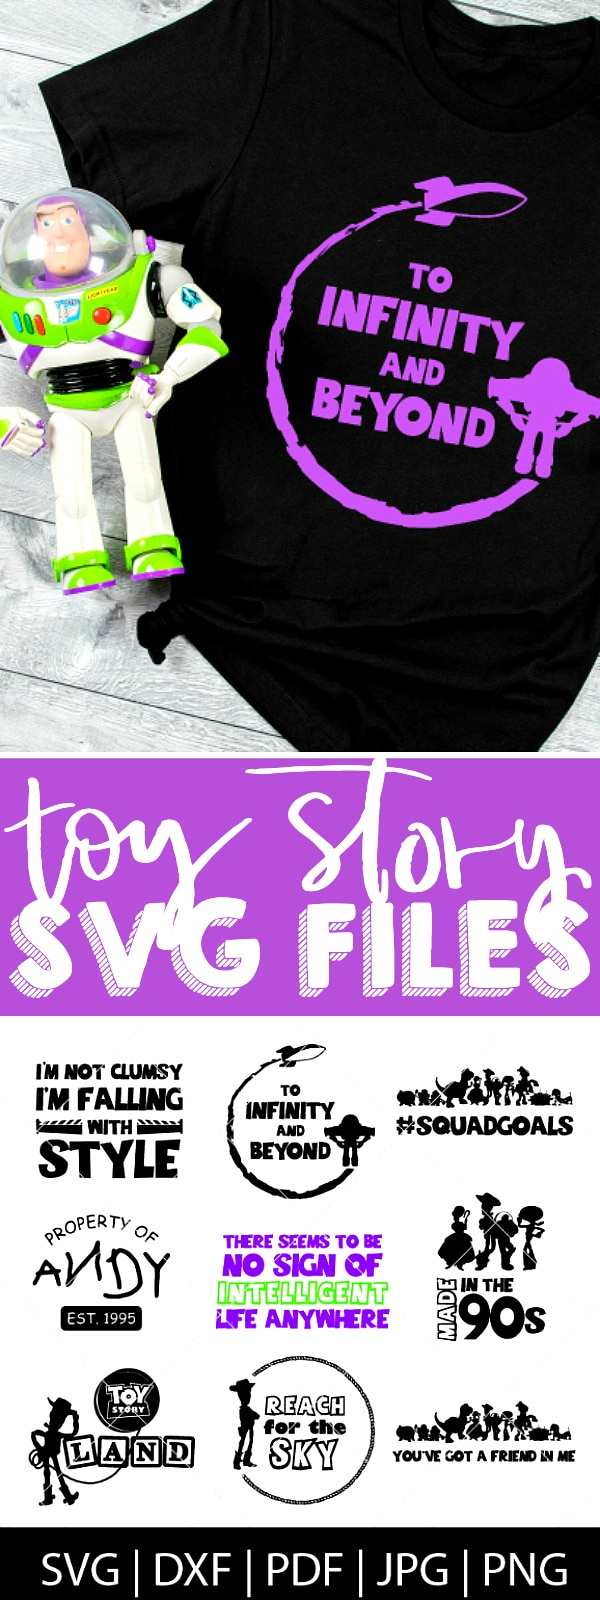 With the excitement of Toy Story Land and Toy Story 4, I thought it was time to make a Toy Story SVG Bundle! Come check out our Toy Story cut files for Cricut and Silhouette - perfect for making diy shirts for the movie theatre or Disney World as well as travel mugs, computer stickers and more! | THE LOVE NERDS #disneyshirt #disneyside #toystoryproject #disneygroupshirts